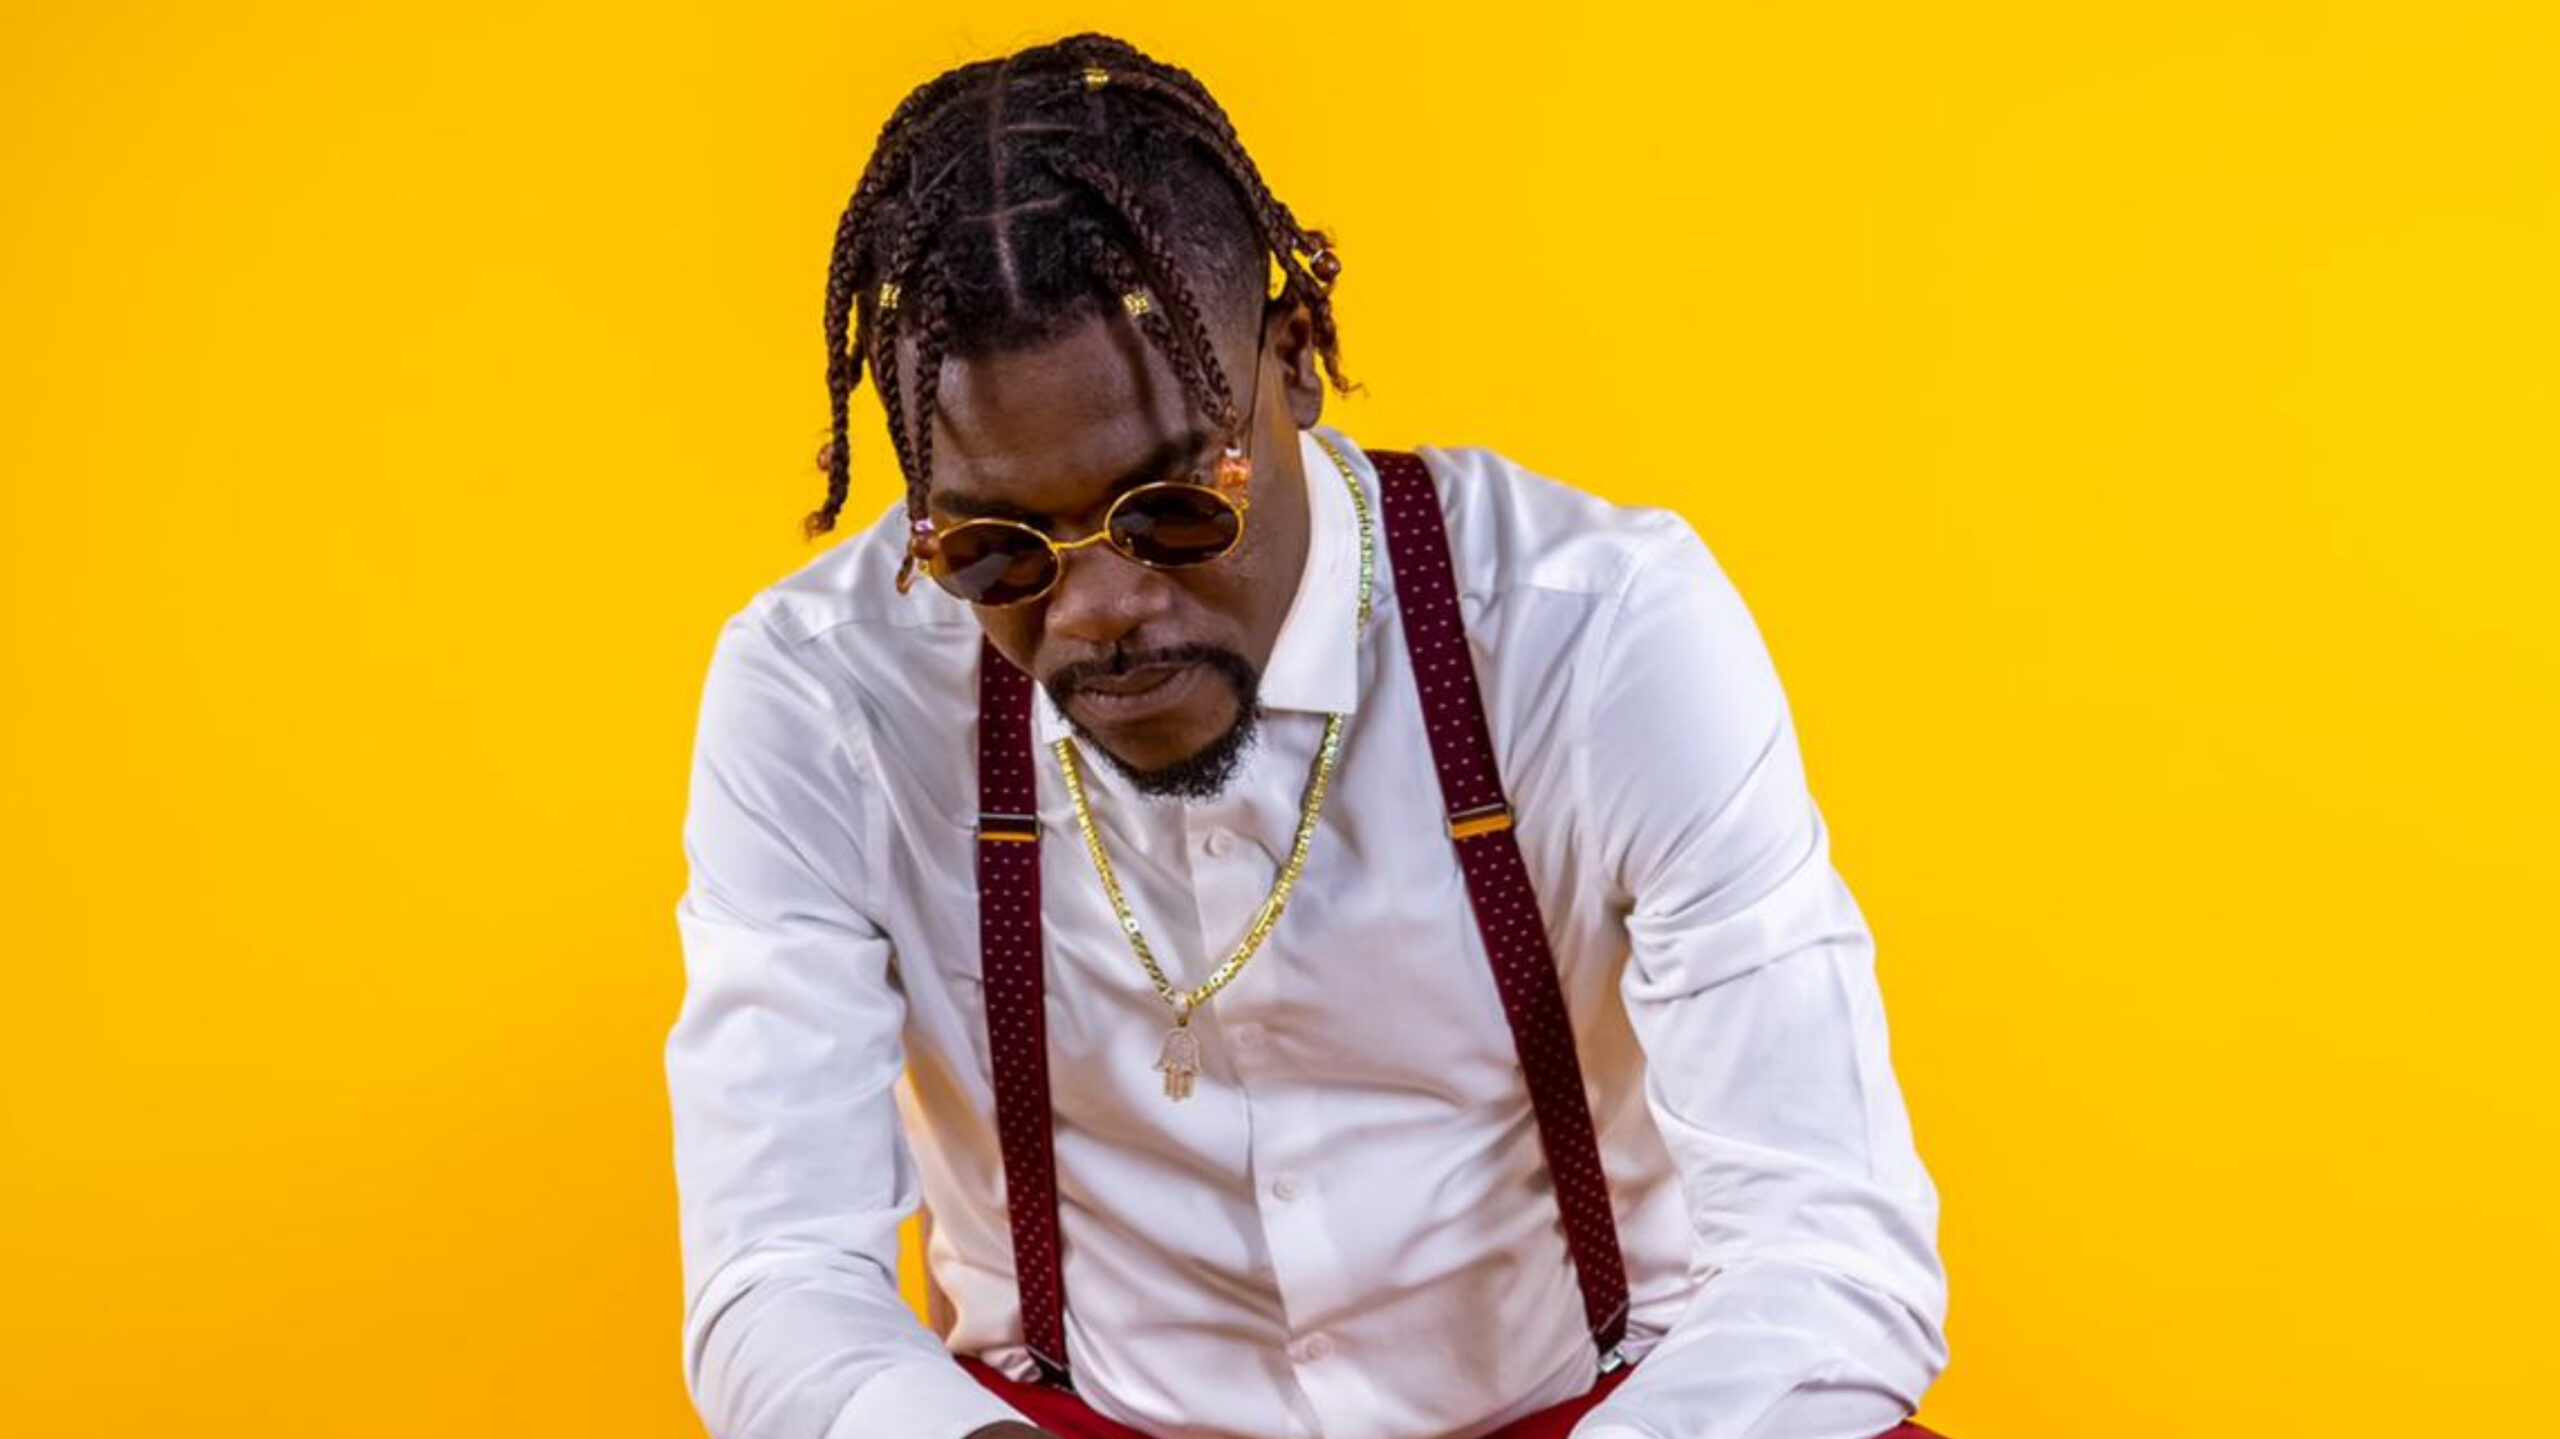 You are currently viewing Afro-Urban Music Star, Slim Flex Bounces Back With New Records